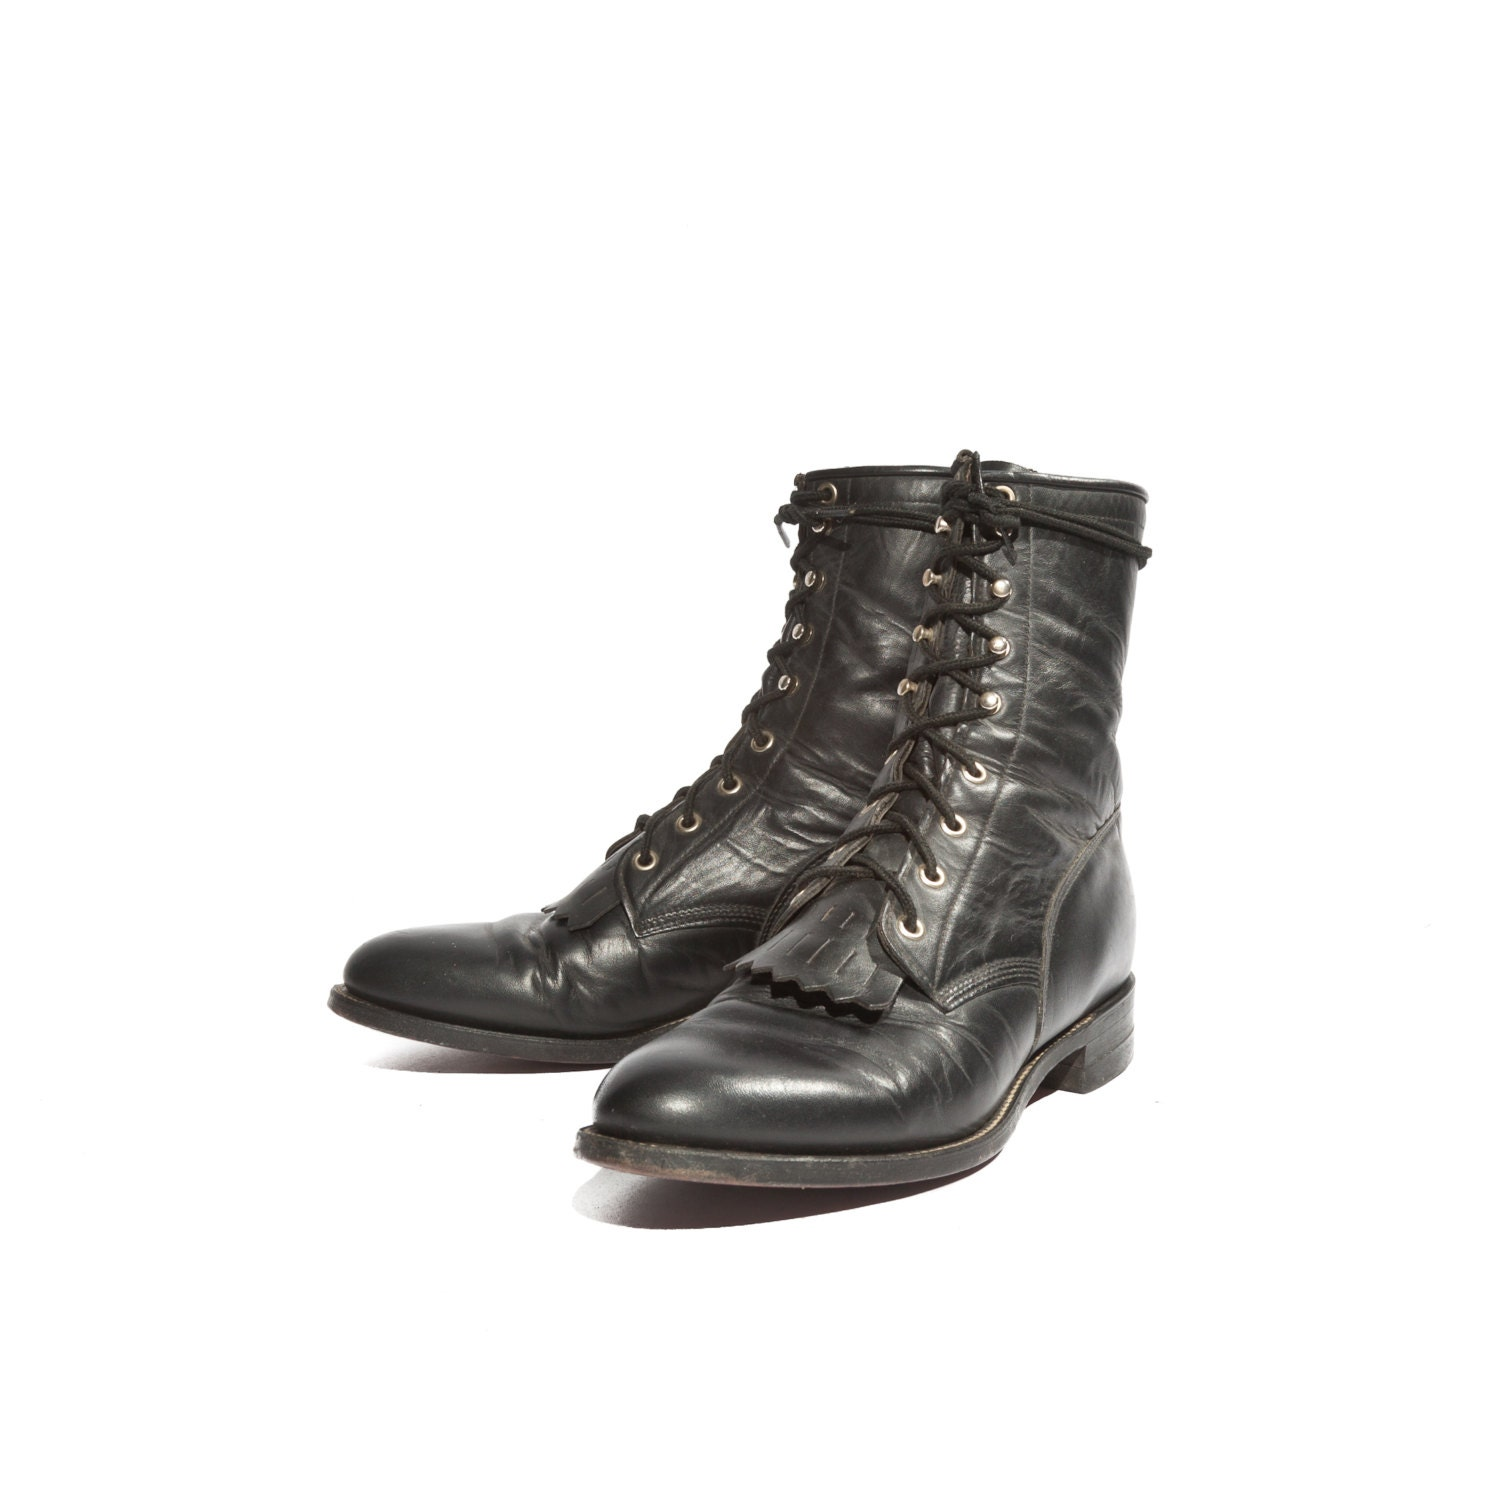 s roper boot lace up western style with removable